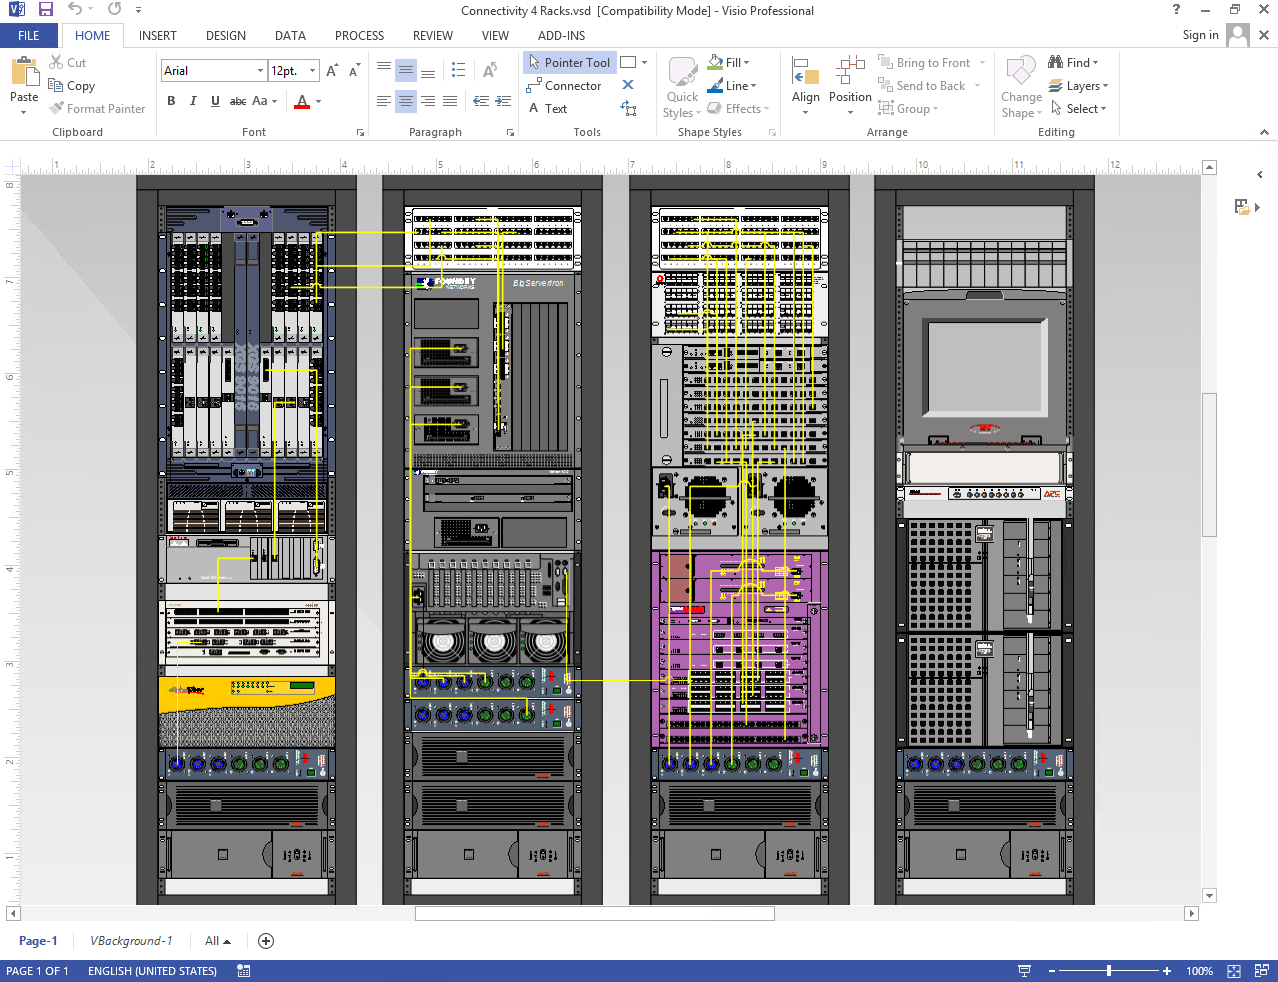 Netzoom visio stencils diagram of data center rack elevations depicting connections within and between racks using netzoom visio stencils asfbconference2016 Choice Image